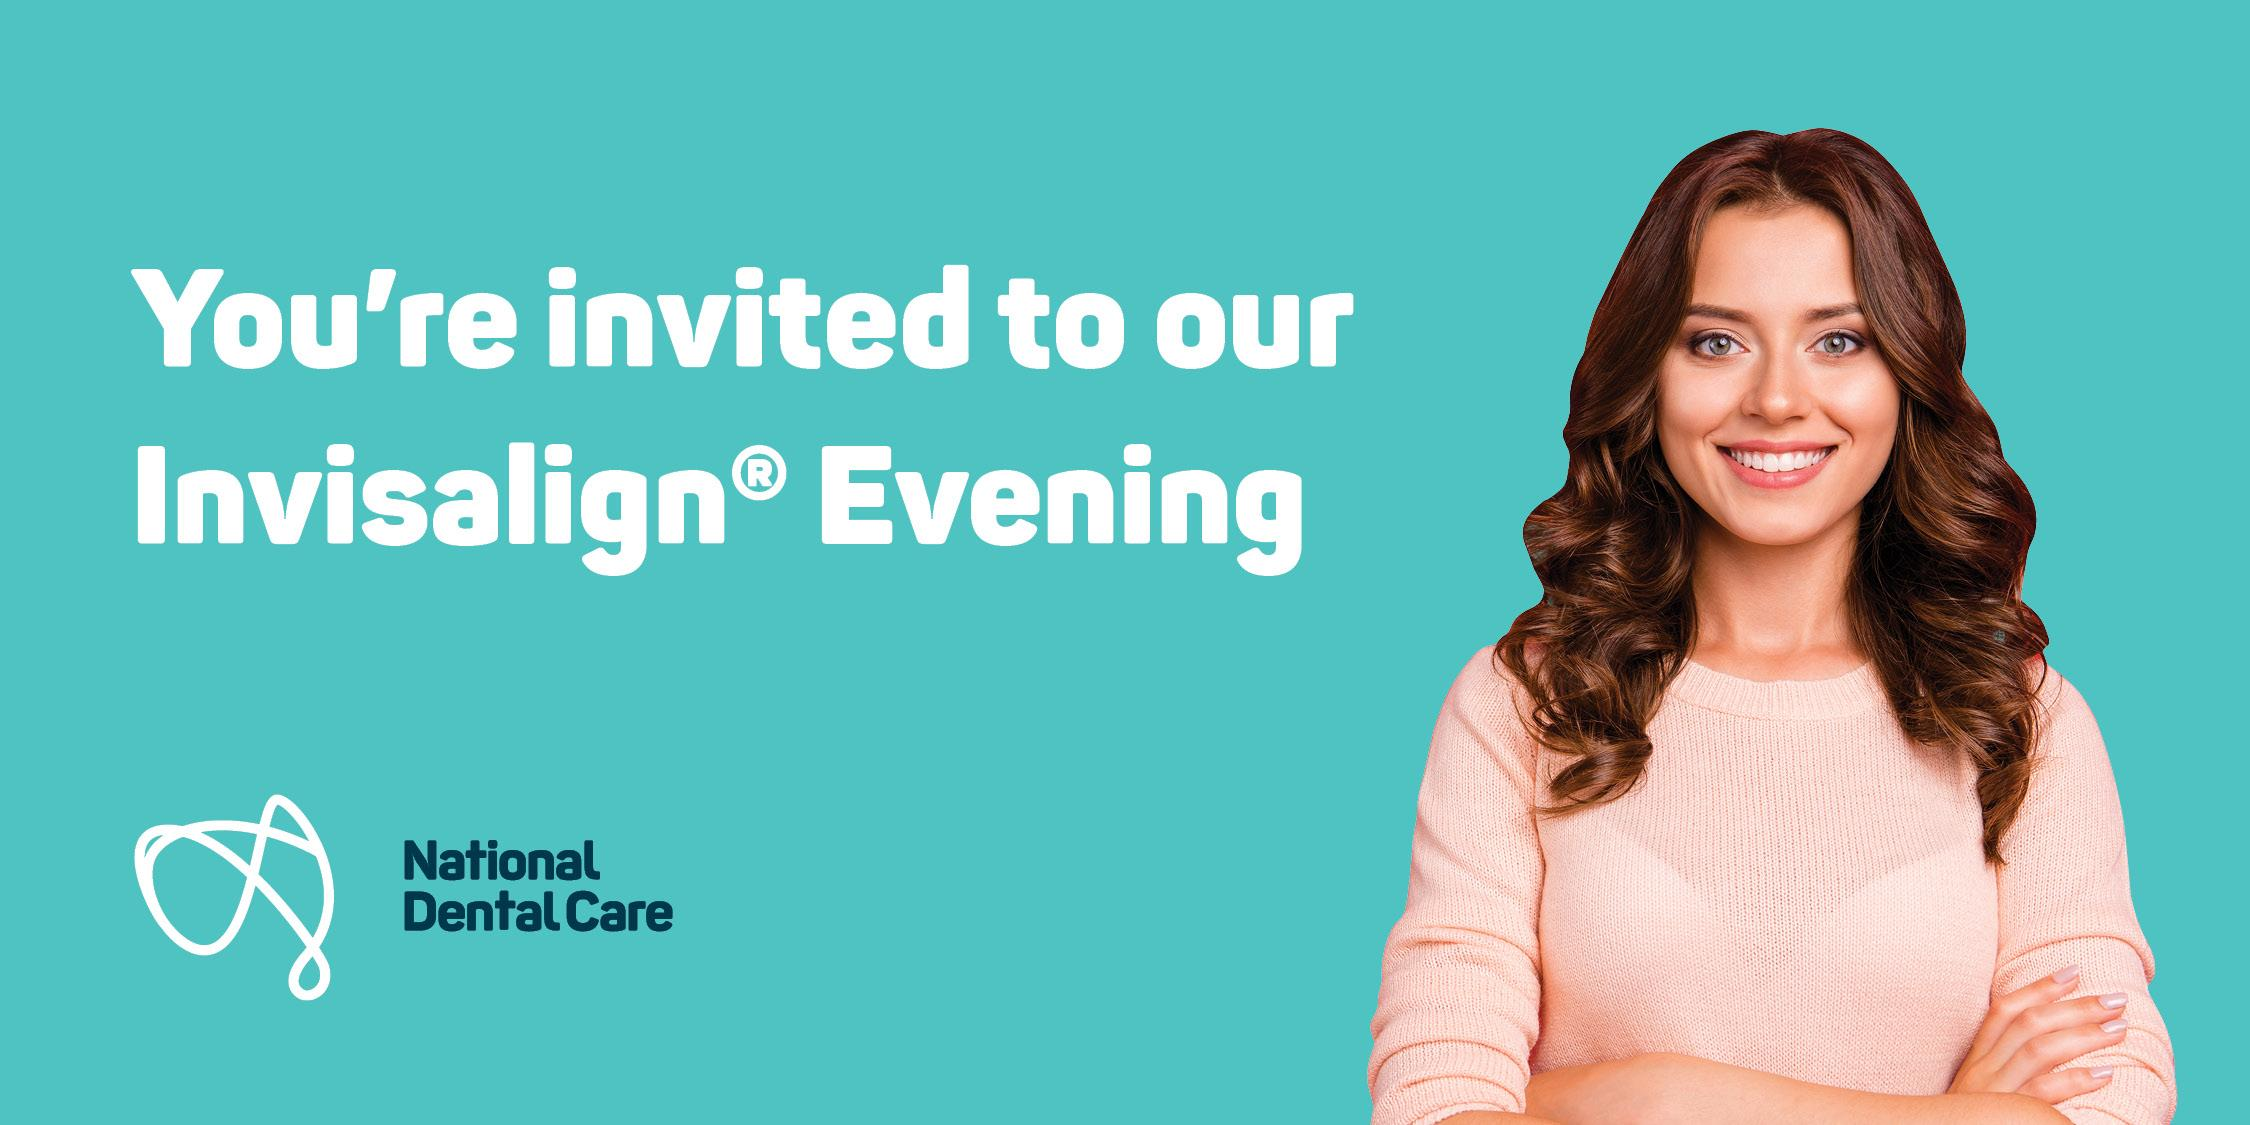 You're invited to our Invisalign evening in Brisbane CBD